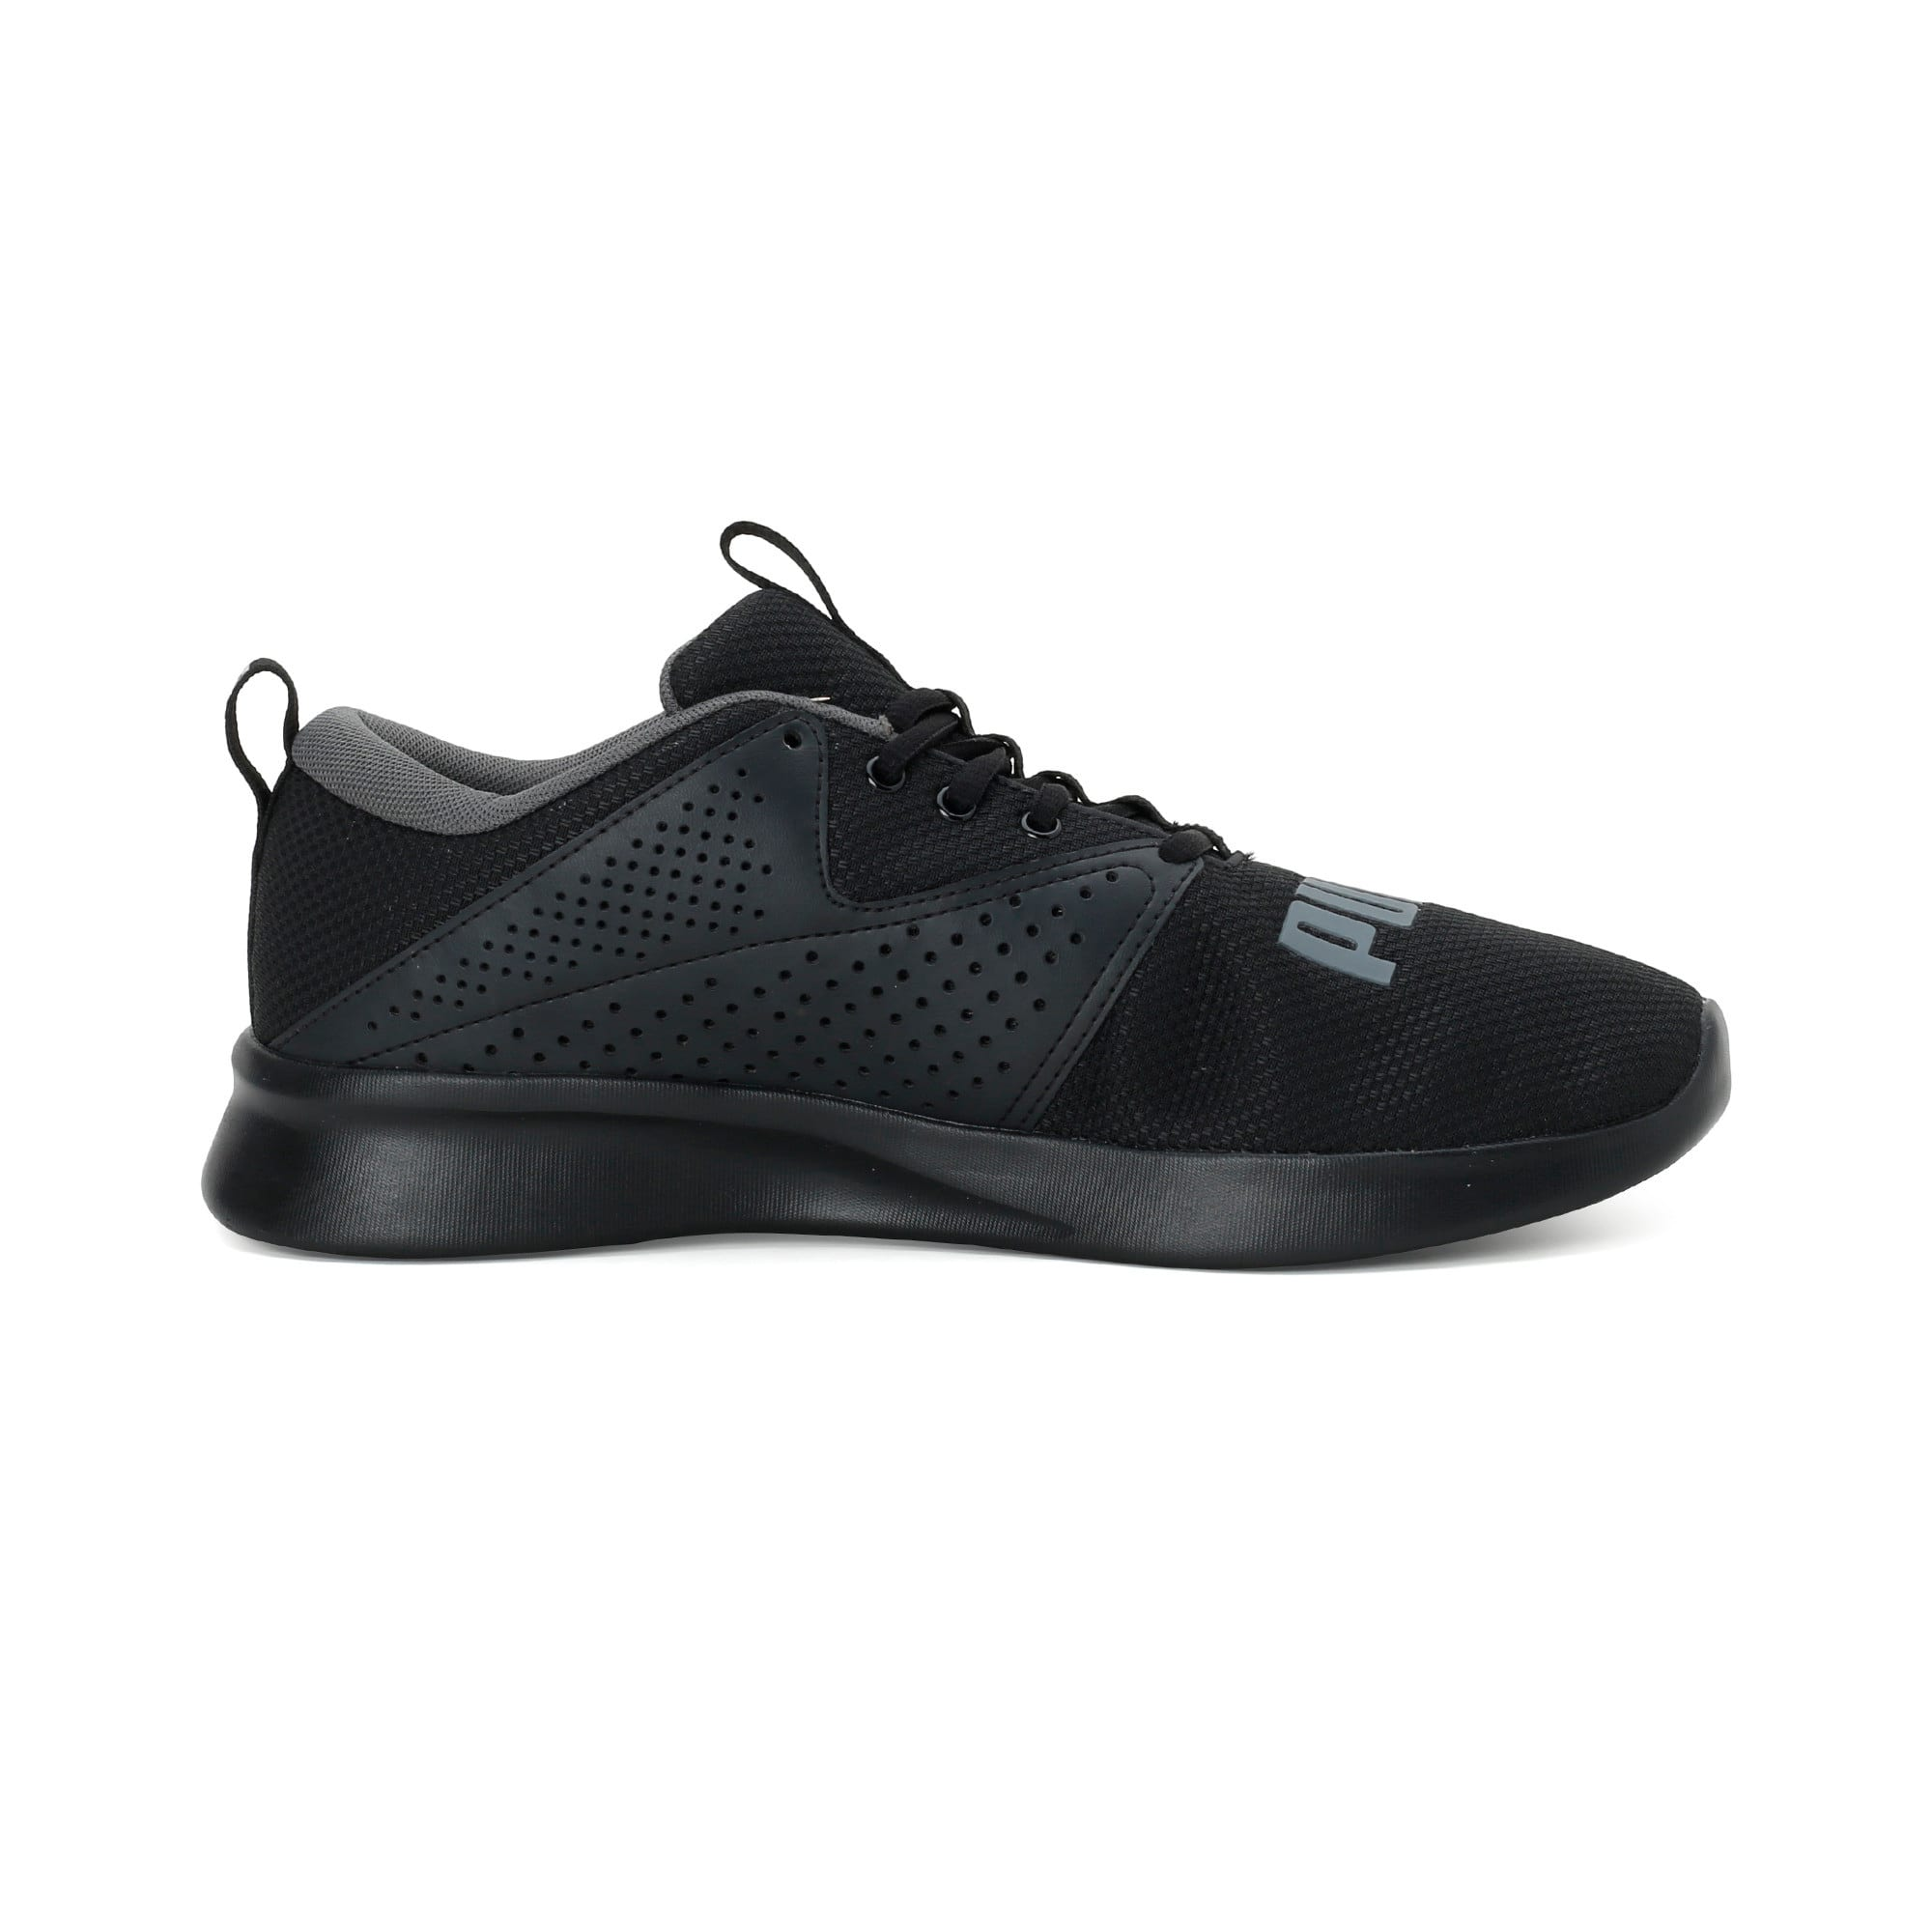 Thumbnail 5 of Flyer Modern Running Shoes, Puma Black-CASTLEROCK, medium-IND